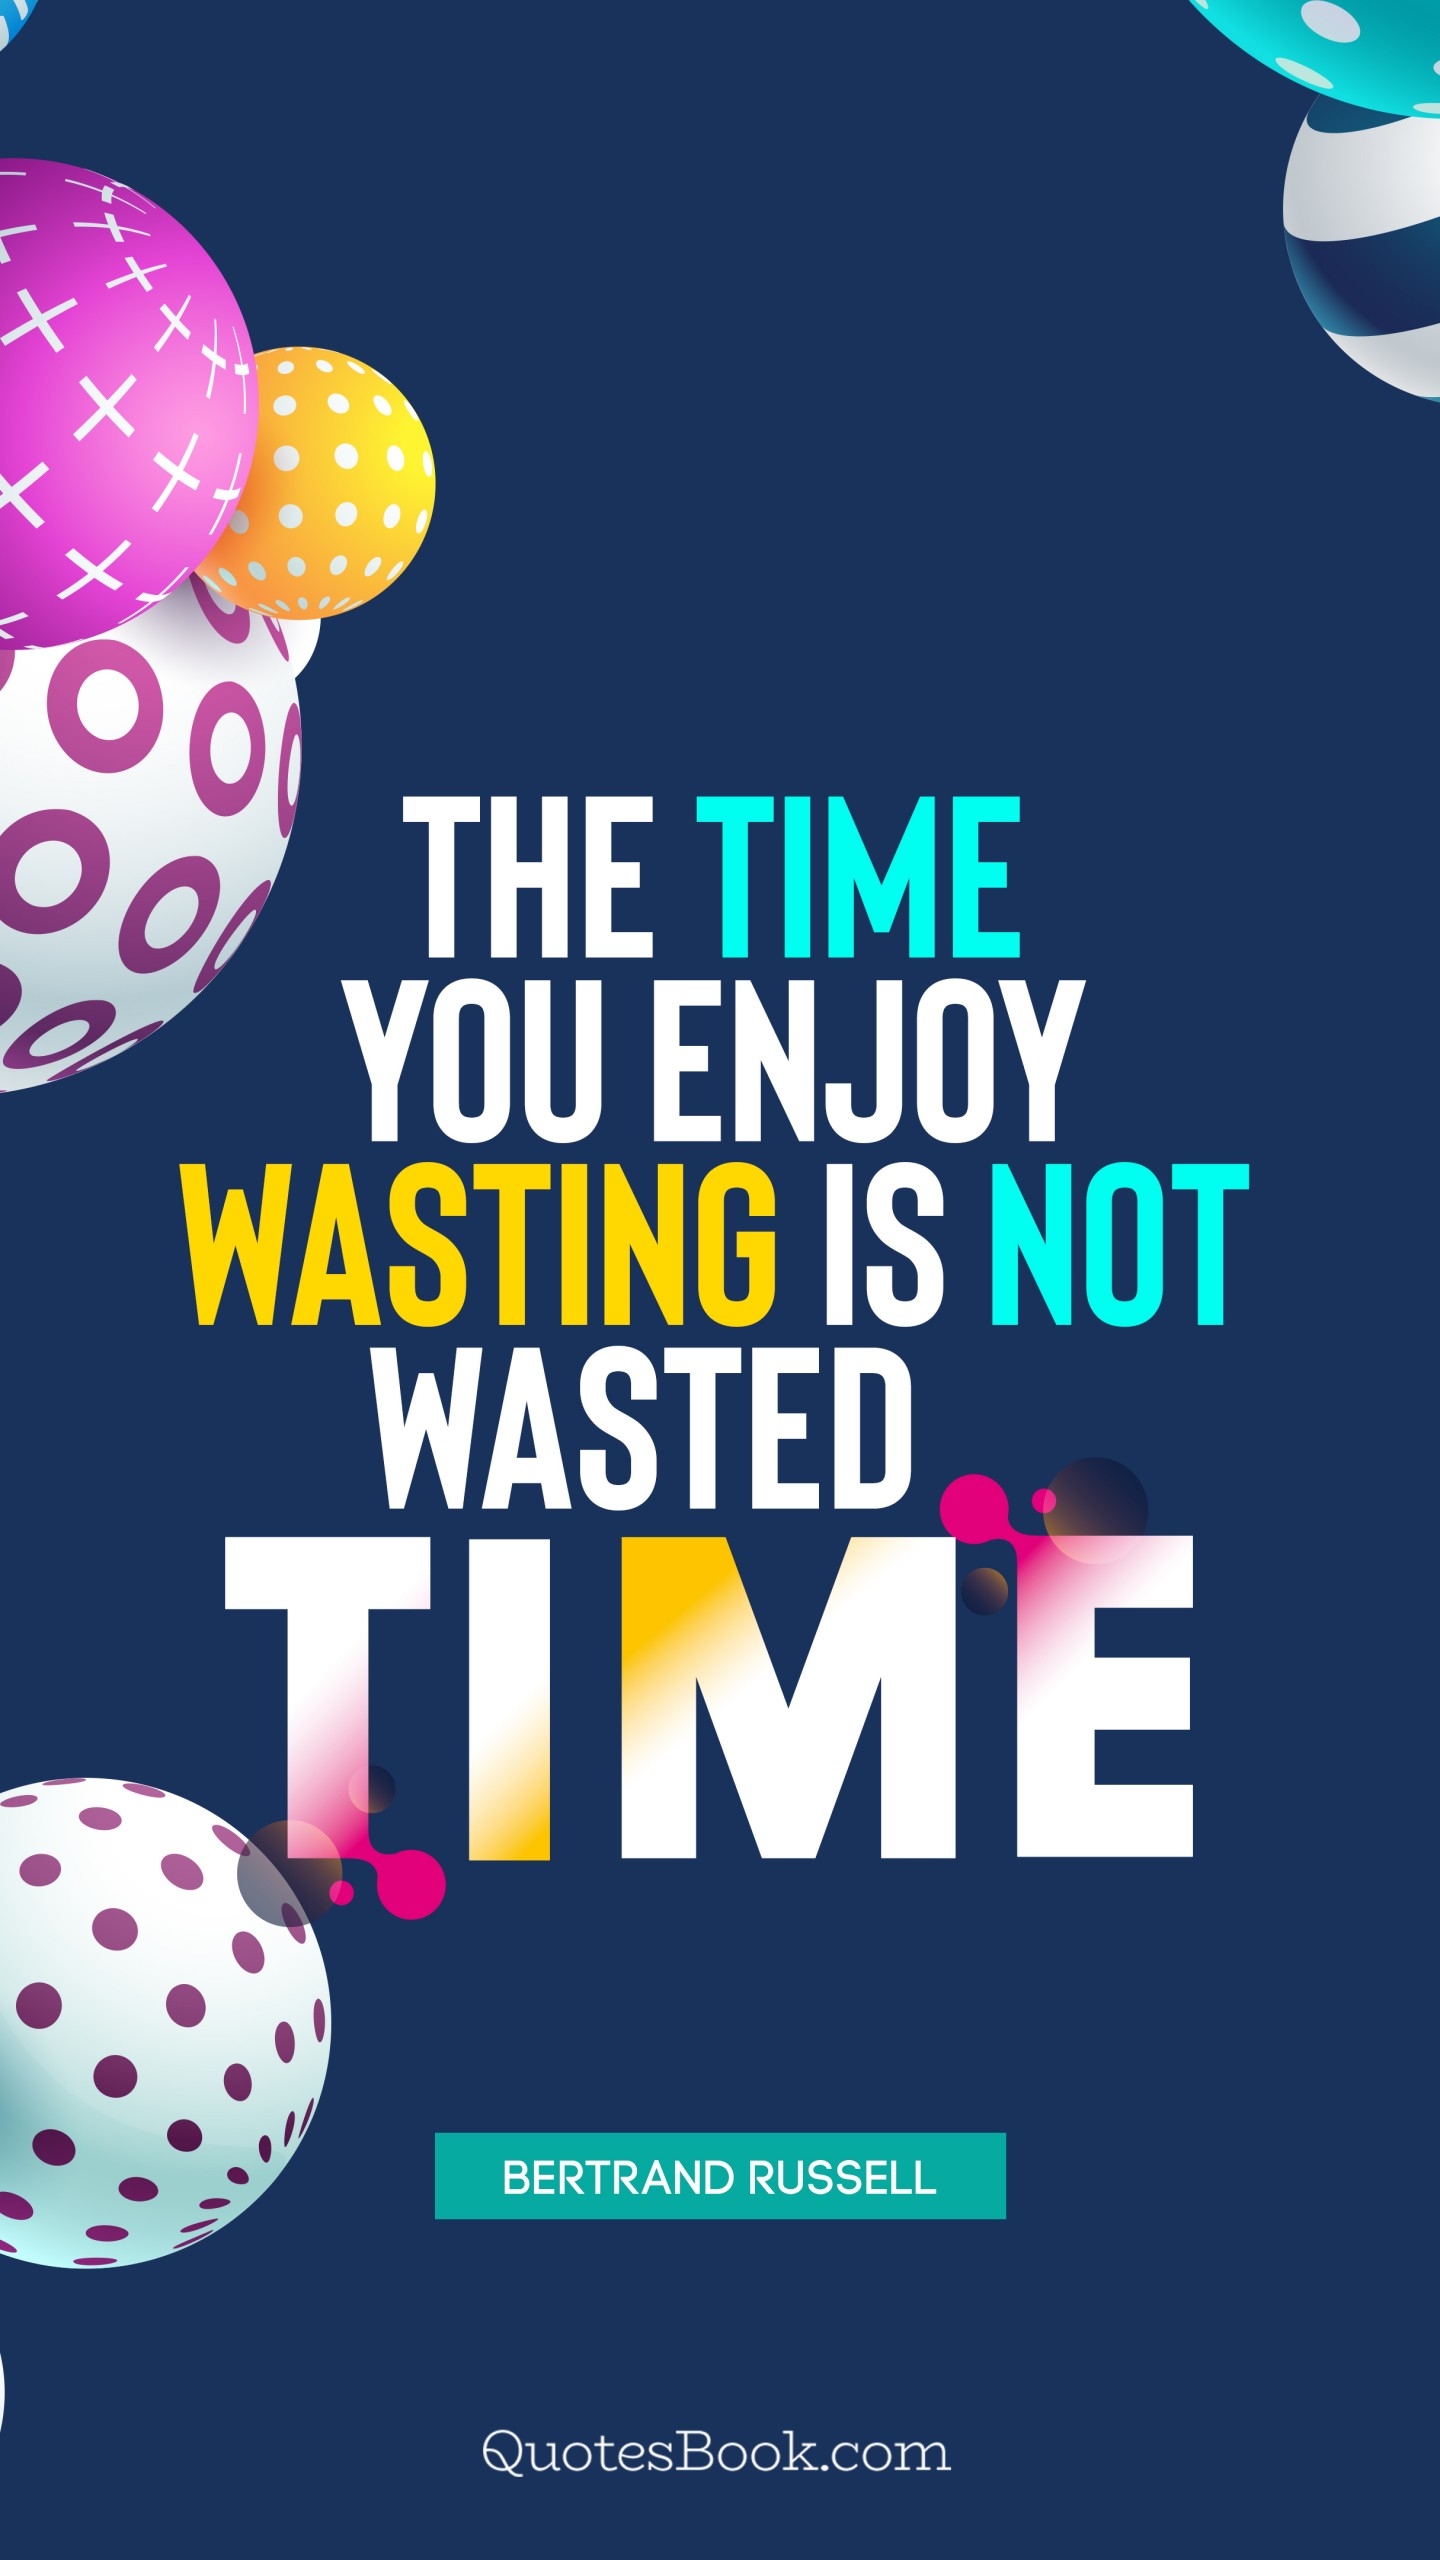 The Time You Enjoy Wasting Is Not Wasted Time Quote By Bertrand Russell Quotesbook